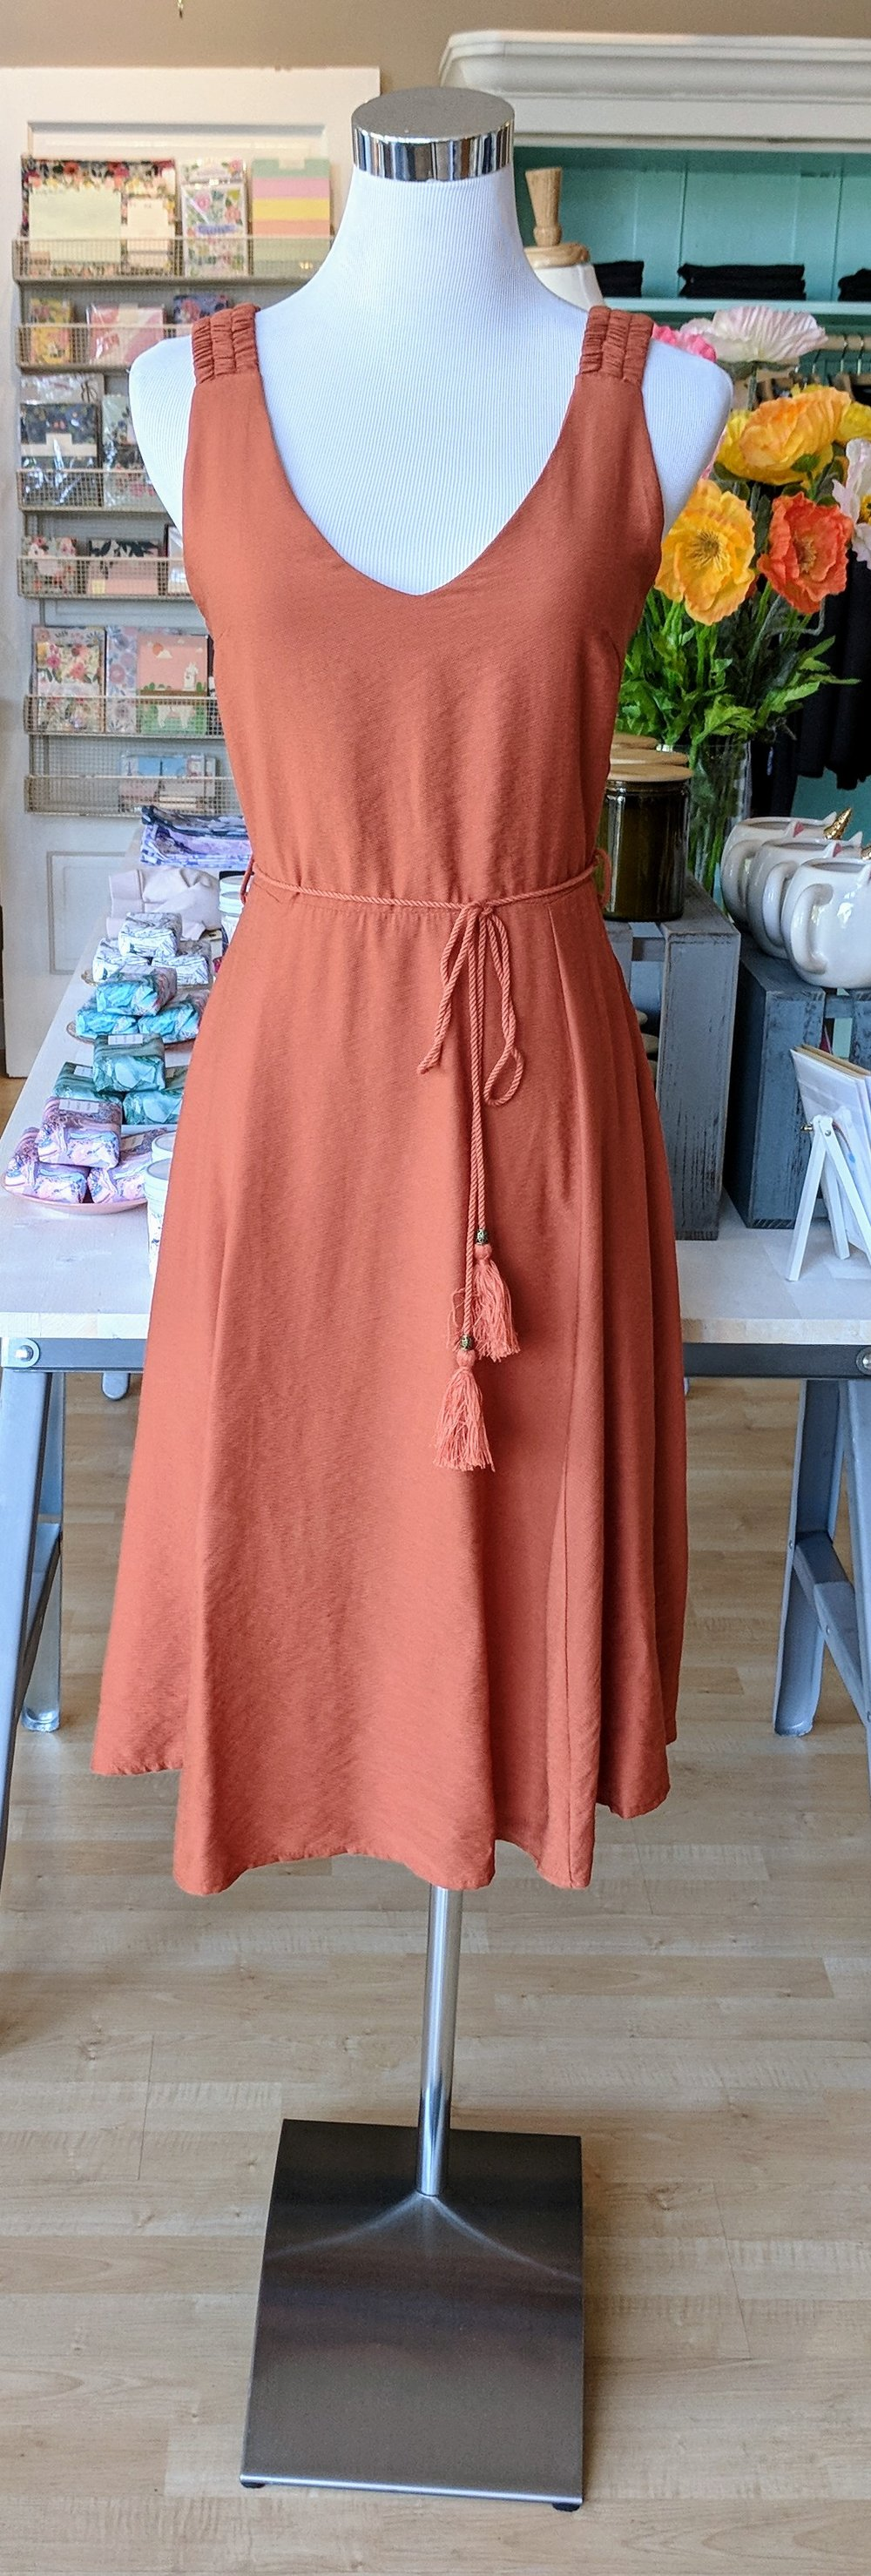 Rust woven dress with front tie.